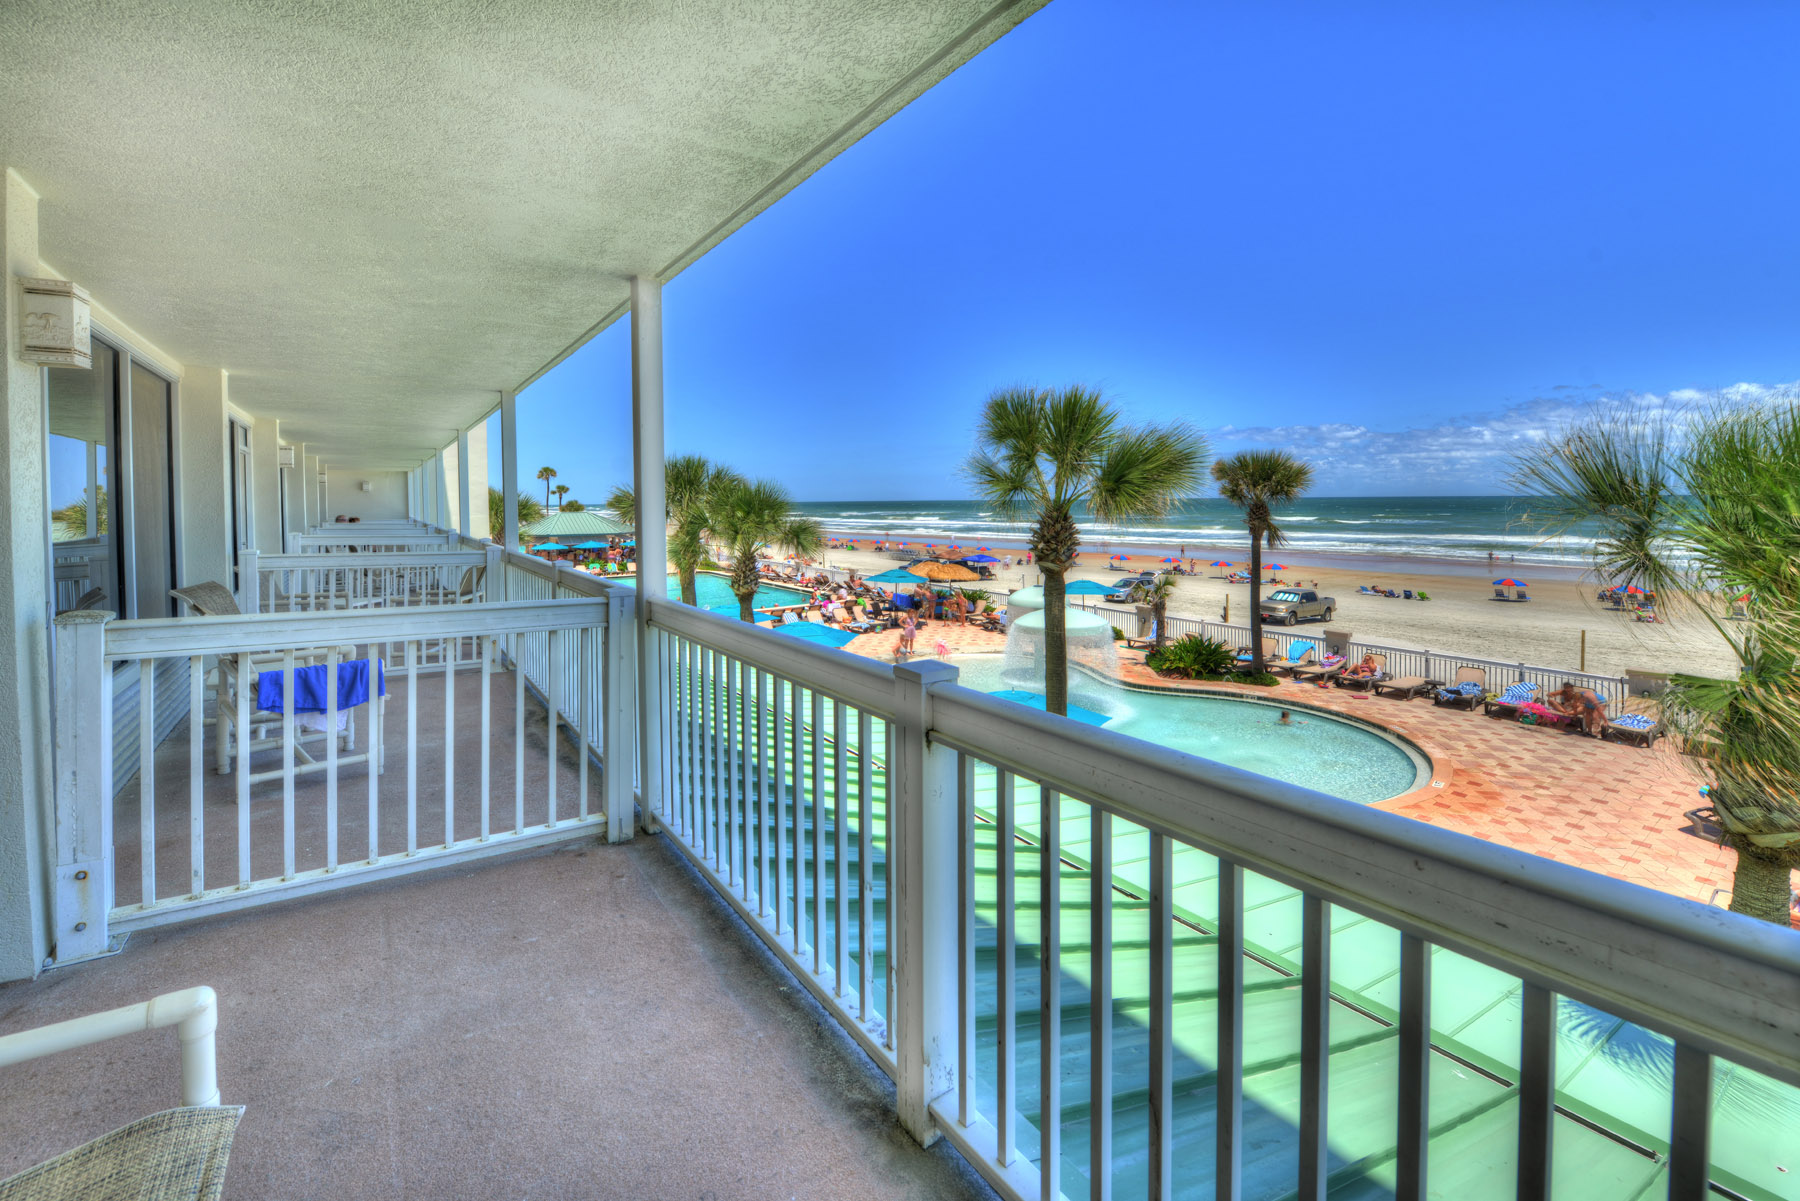 condominiums errol the cottages beach sea in daytona cottage fl smyrna rent for luxury by new